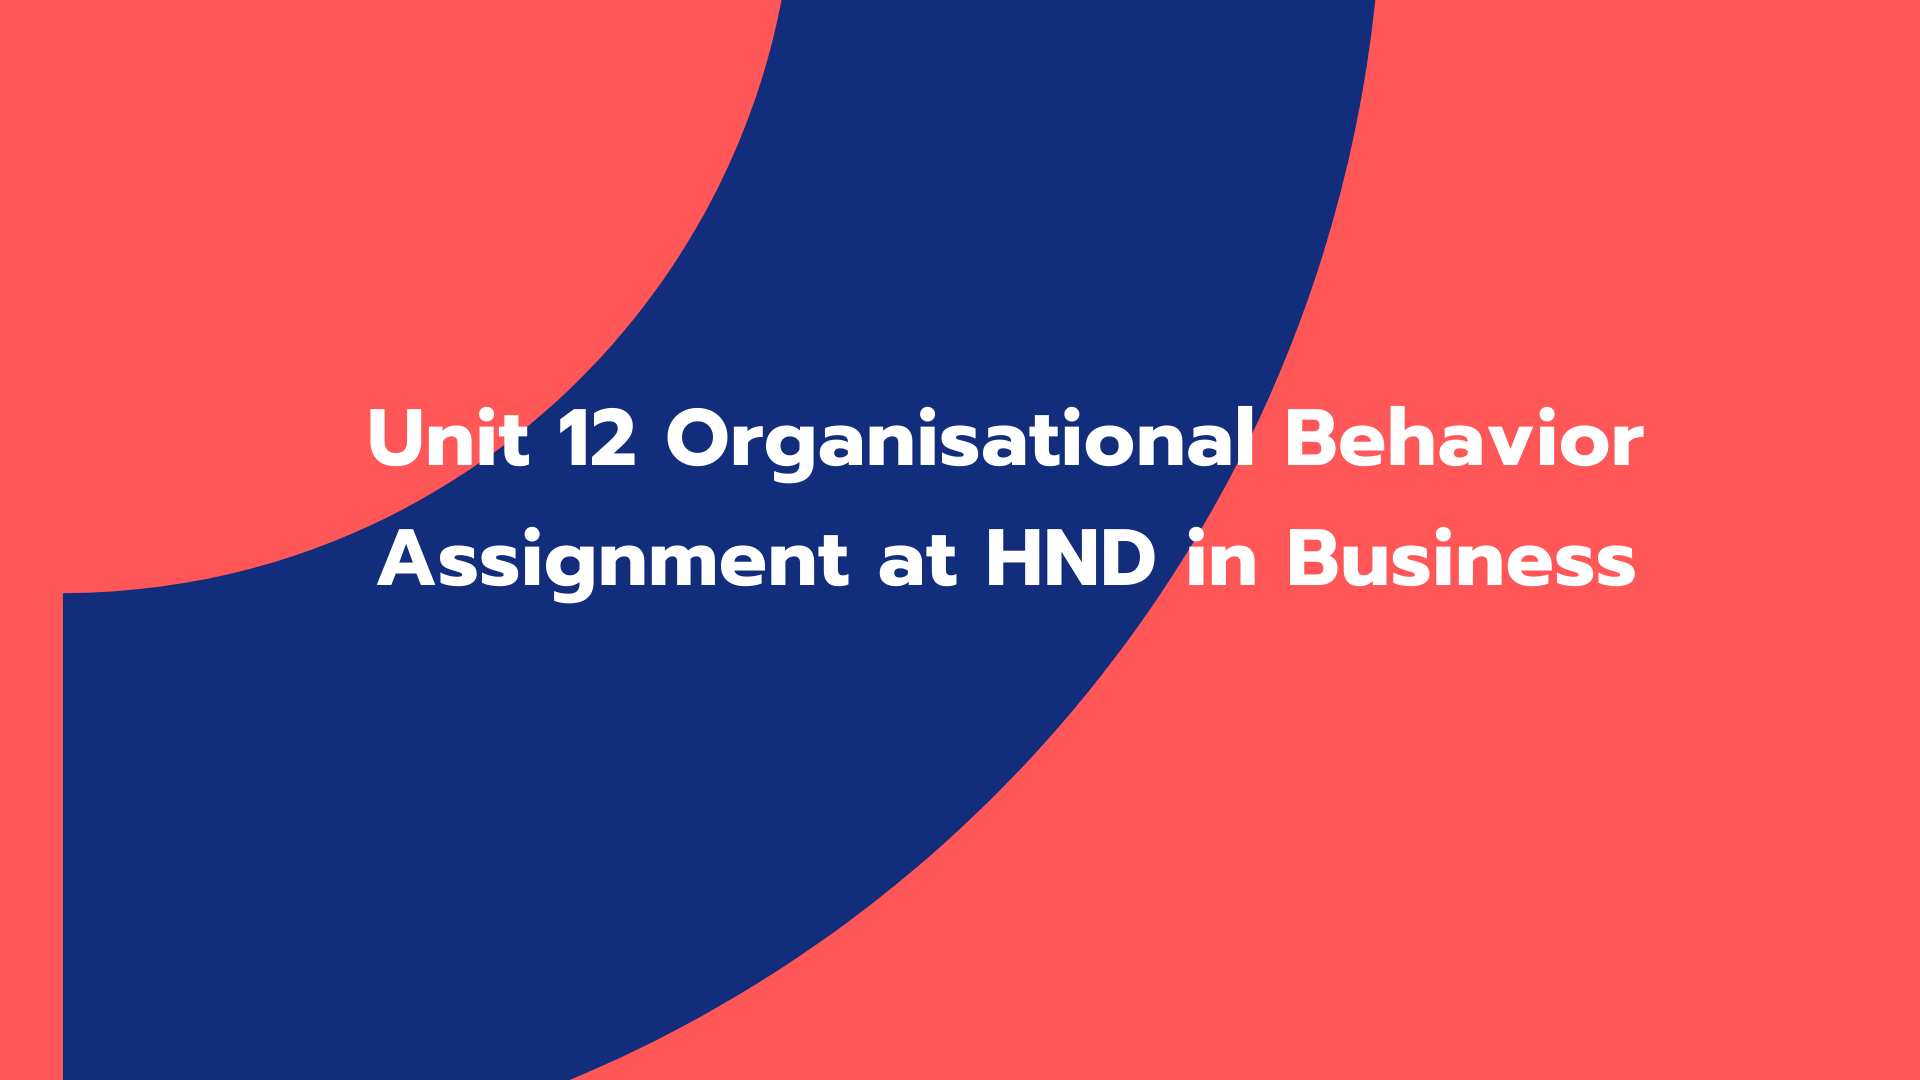 Unit 12 Organisational Behavior Assignment at HND in Business